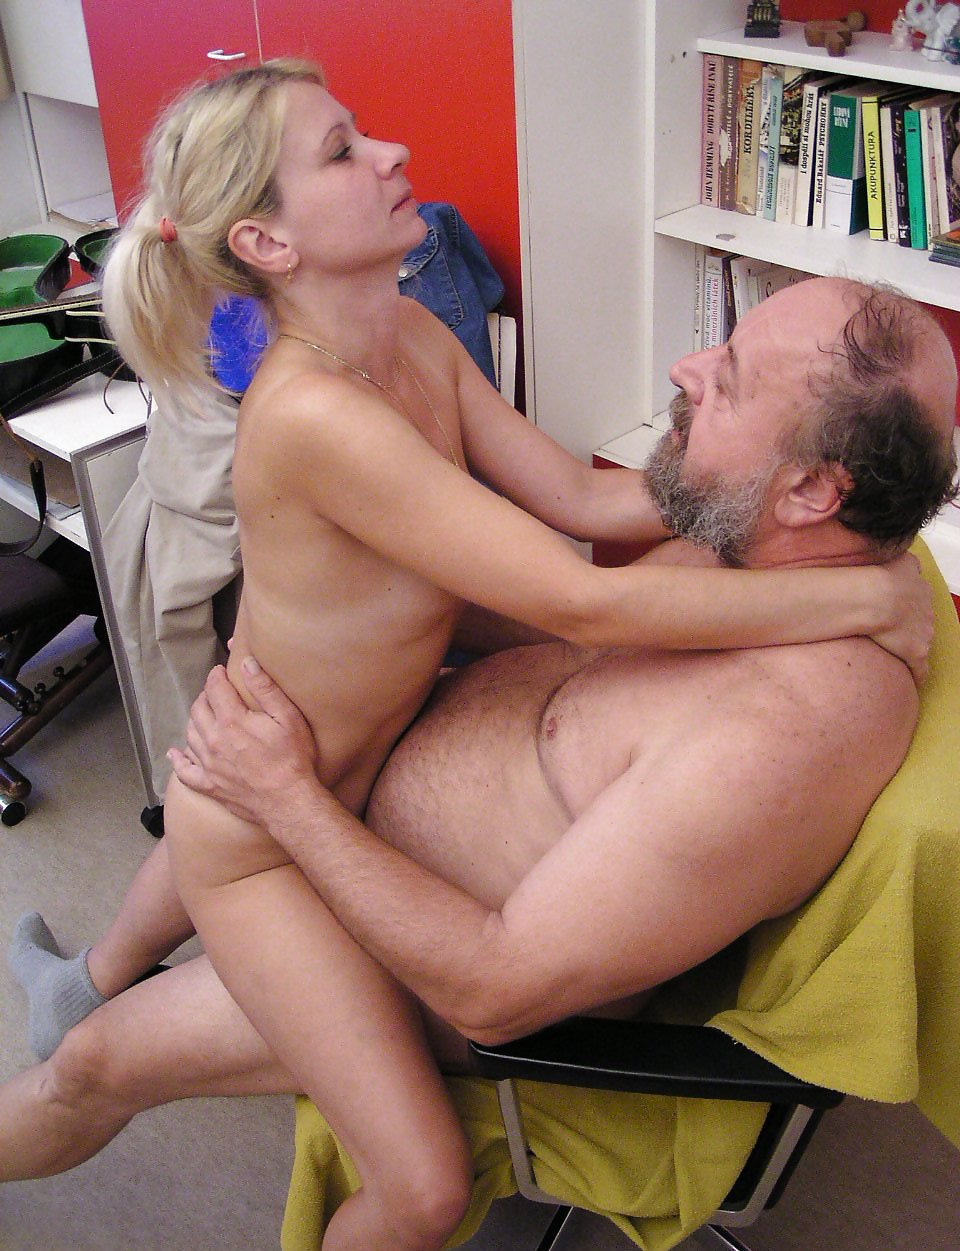 naked-free-dad-girl-scout-daughter-porn-night-clubs